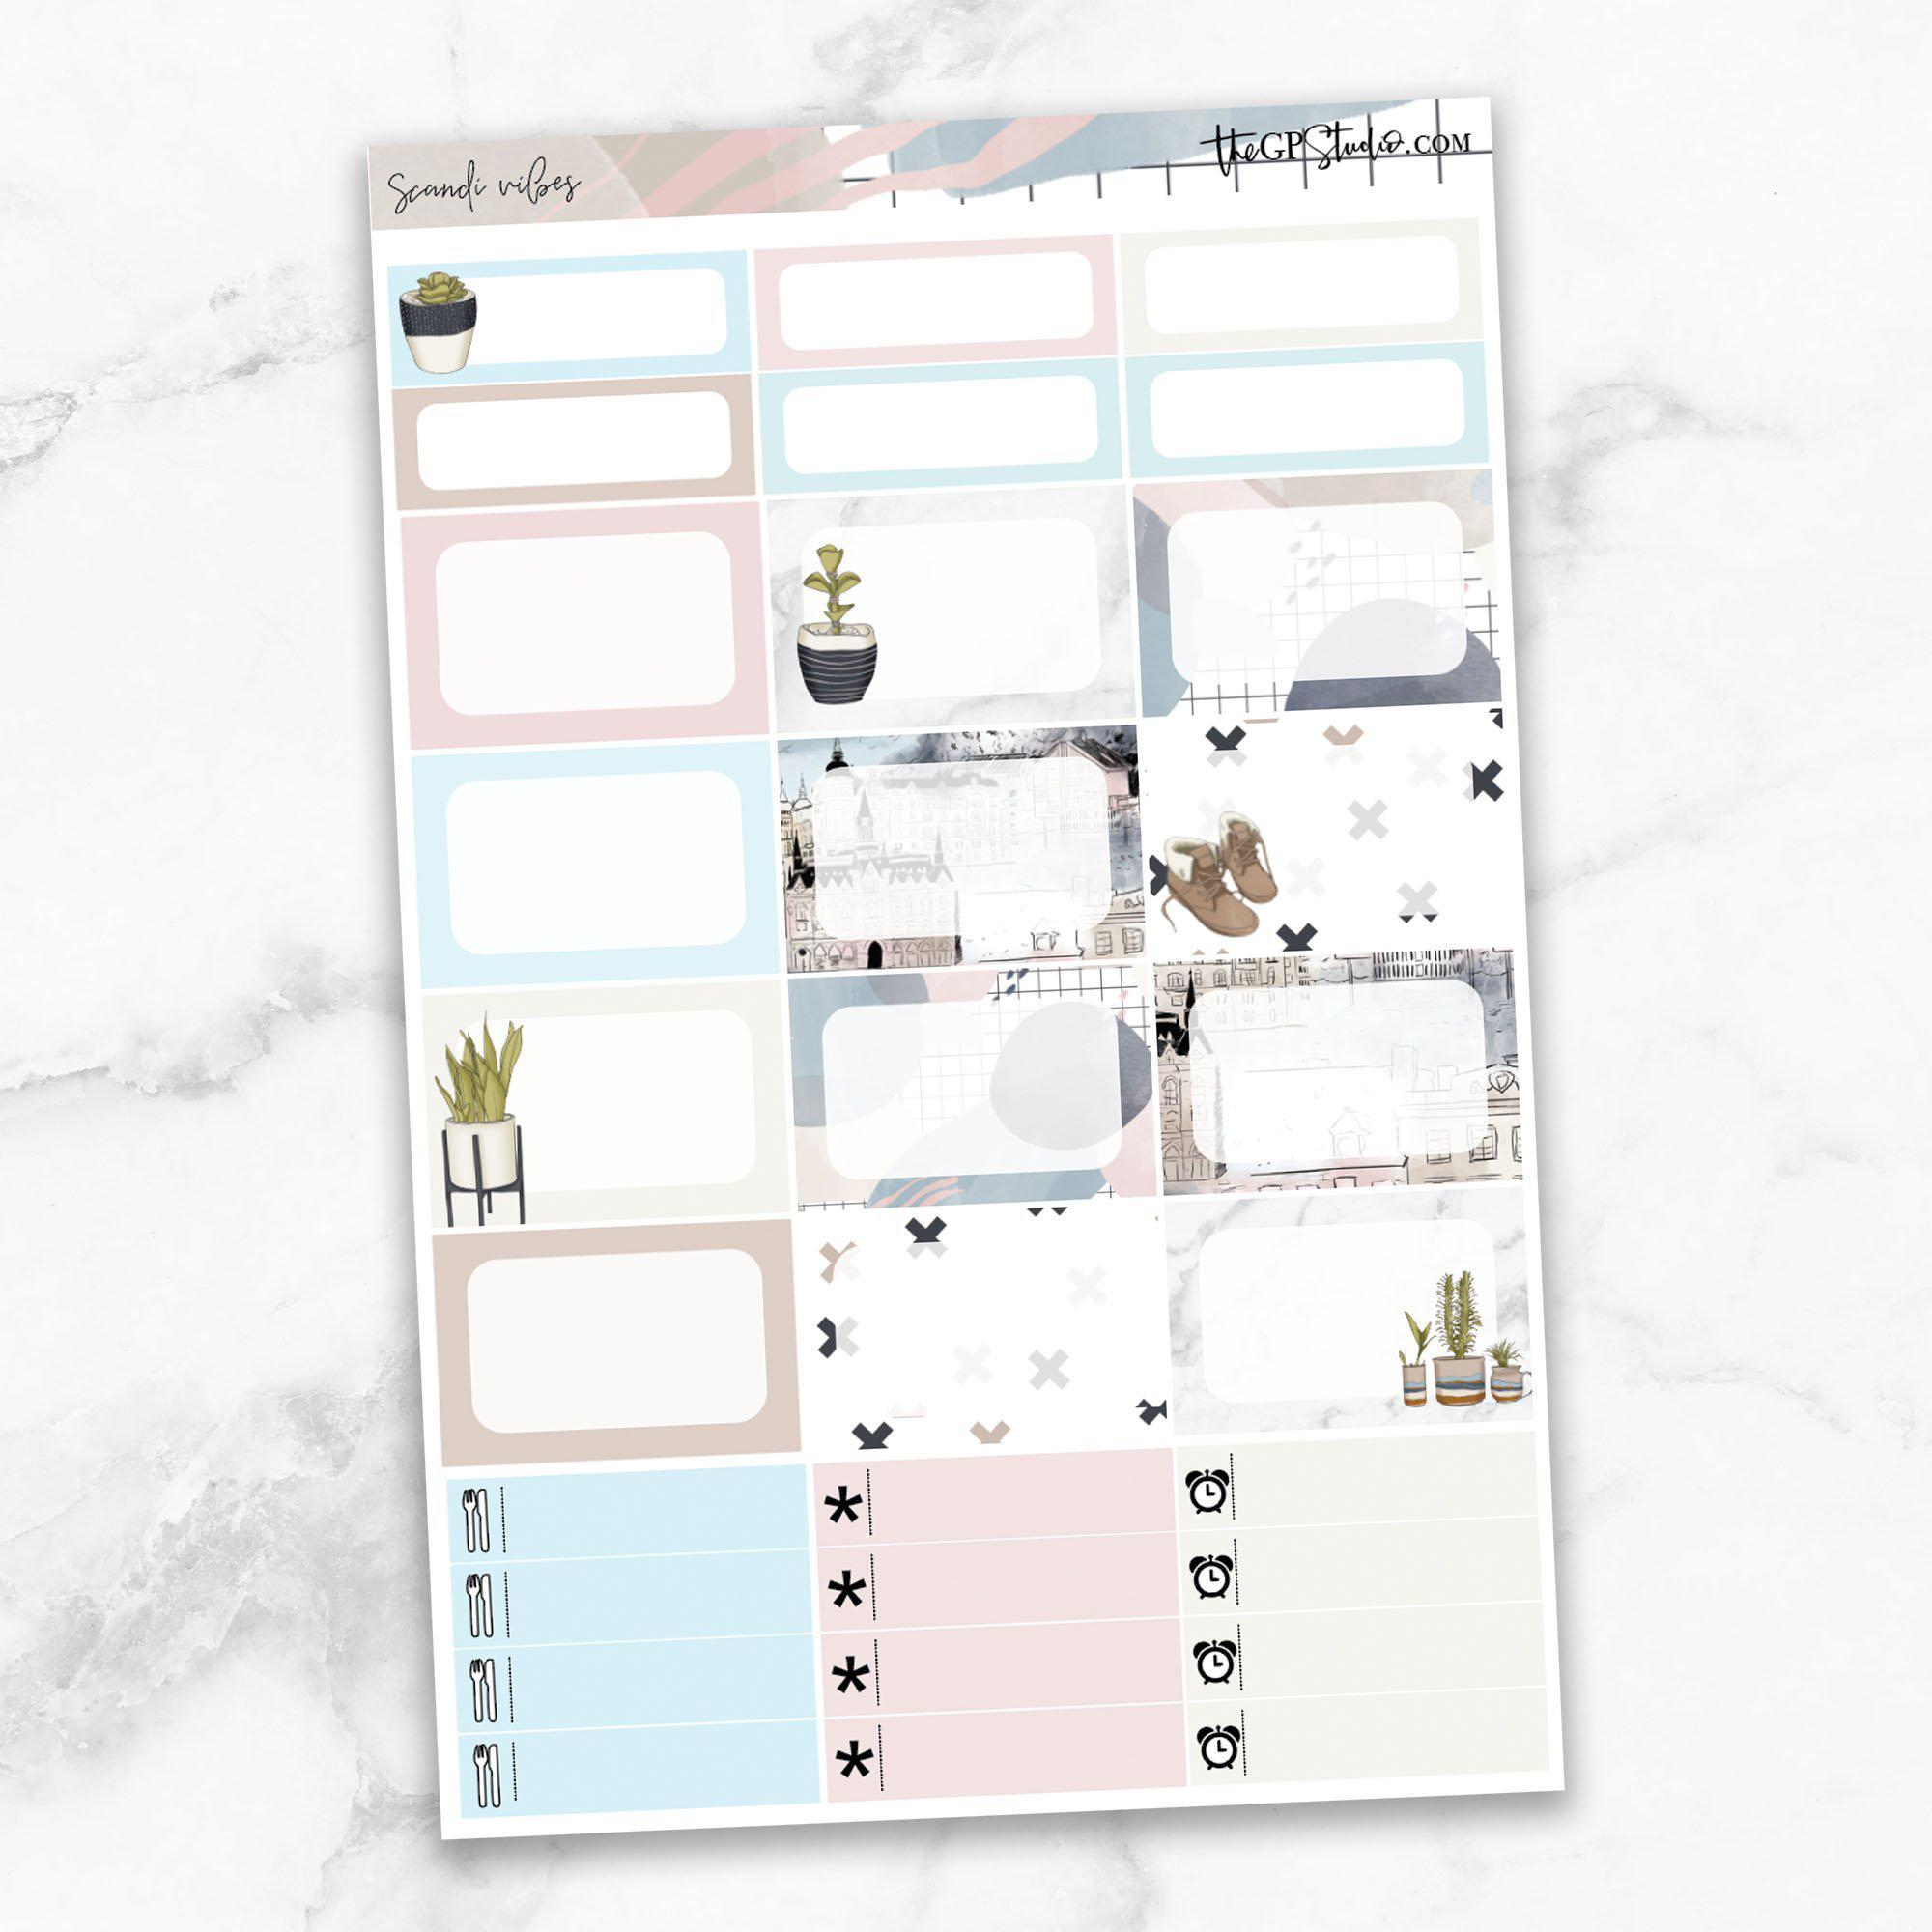 SCANDI VIBES Half Boxes Planner Stickers-The GP Studio